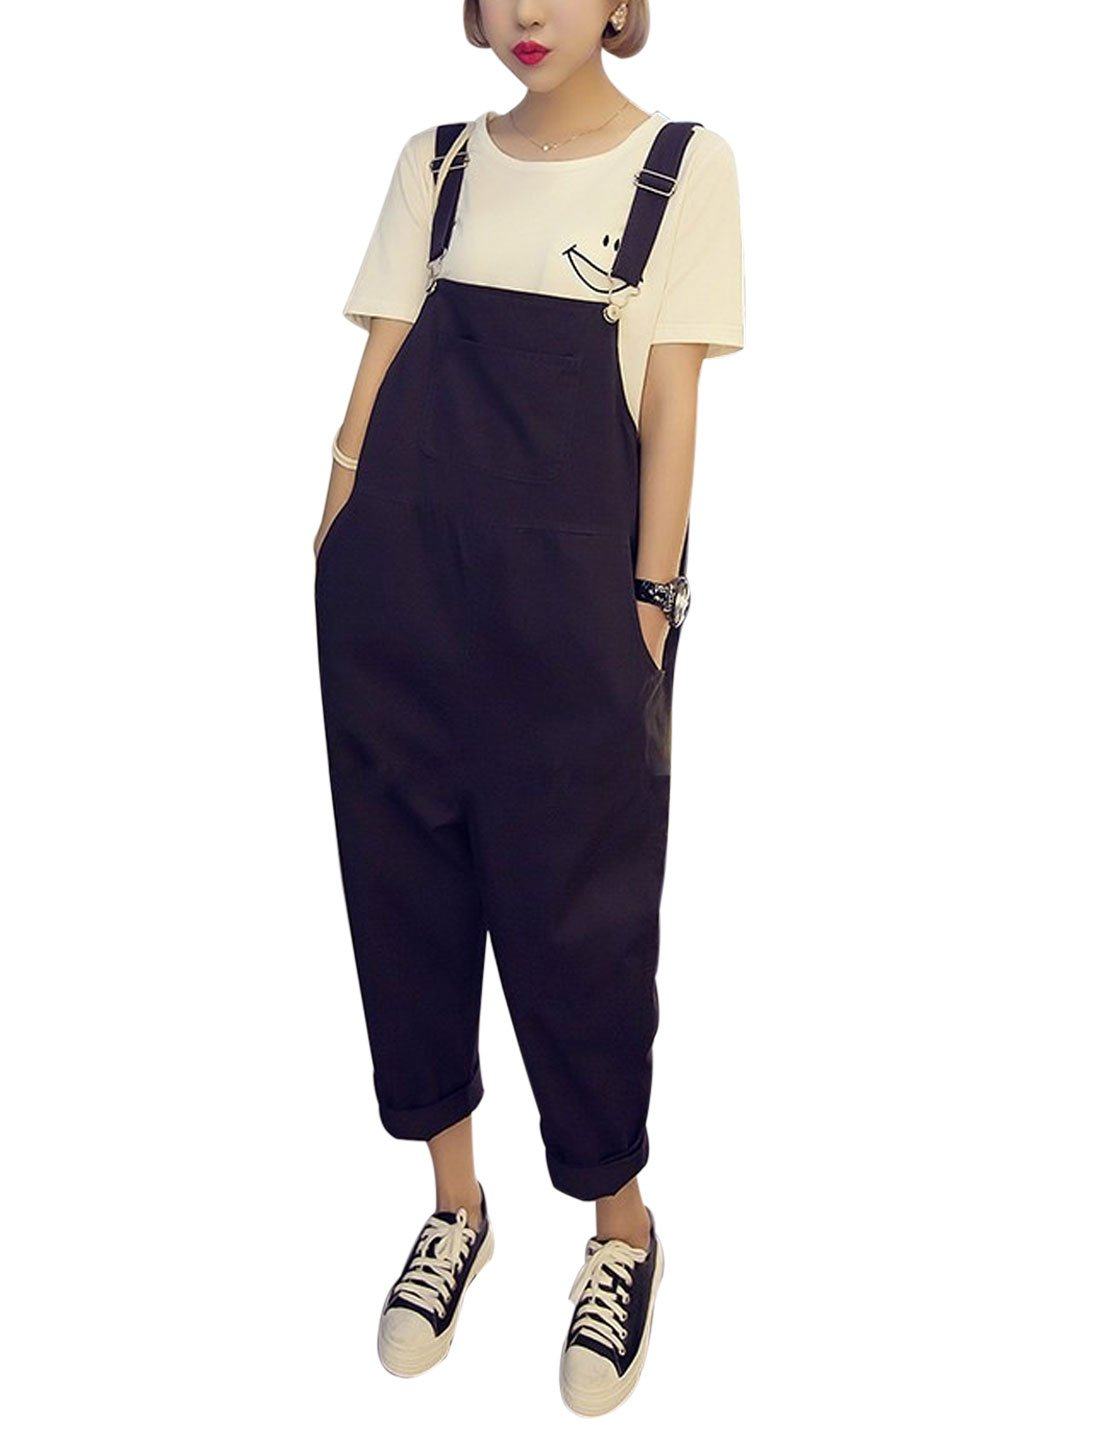 Yeokou Women's Loose Baggy Cotton Wide Leg Jumpsuit Rompers Overalls Harem Pants (X-Large, Black)